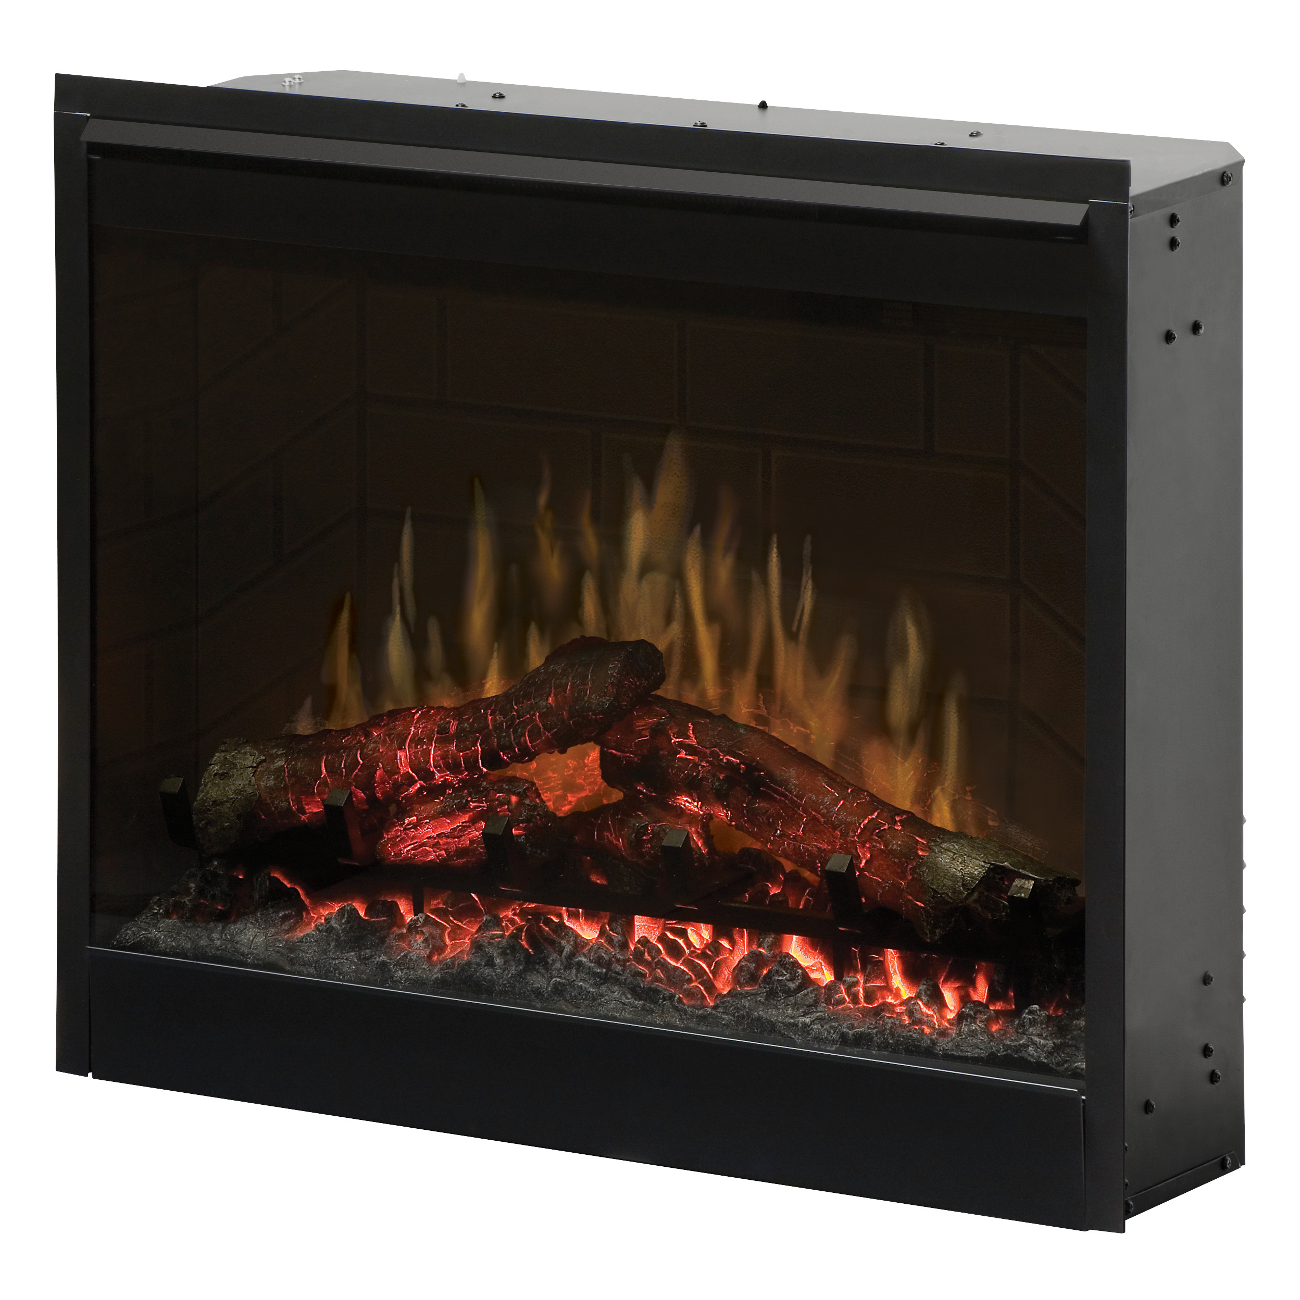 dimplex df2608 electric fireplace insert